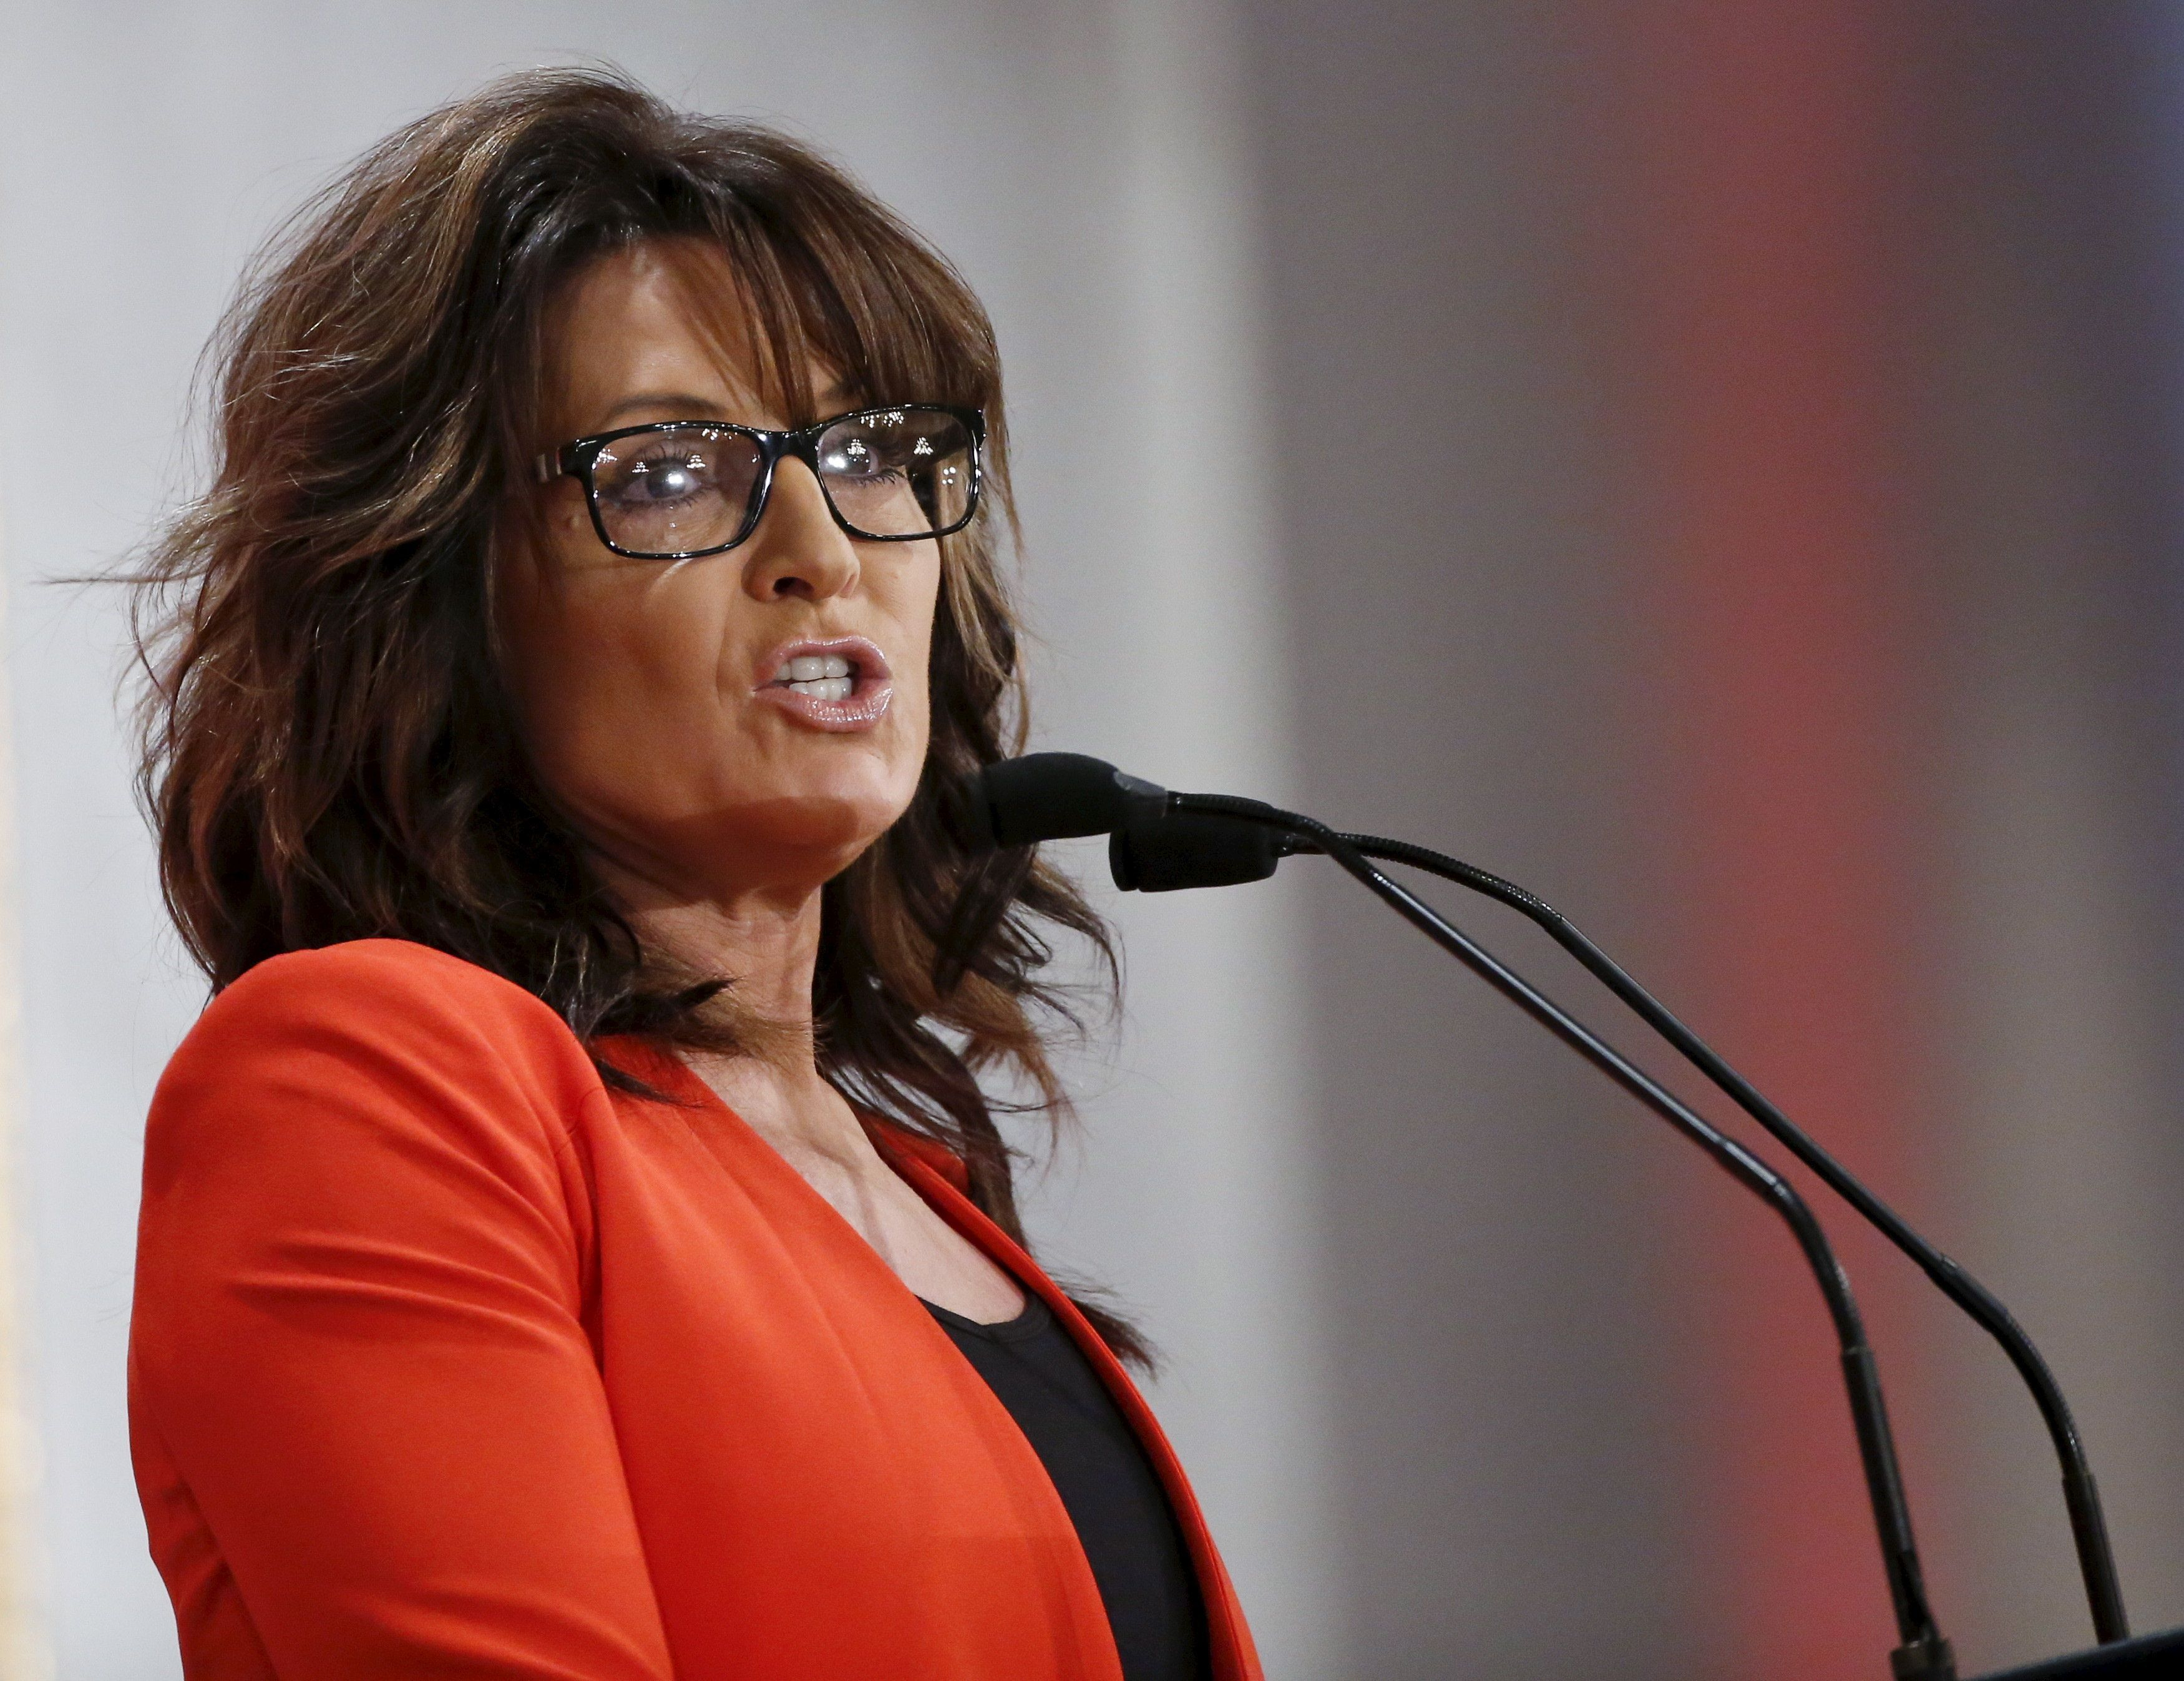 Sarah Palin Actually Made A Pretty Good Observation About